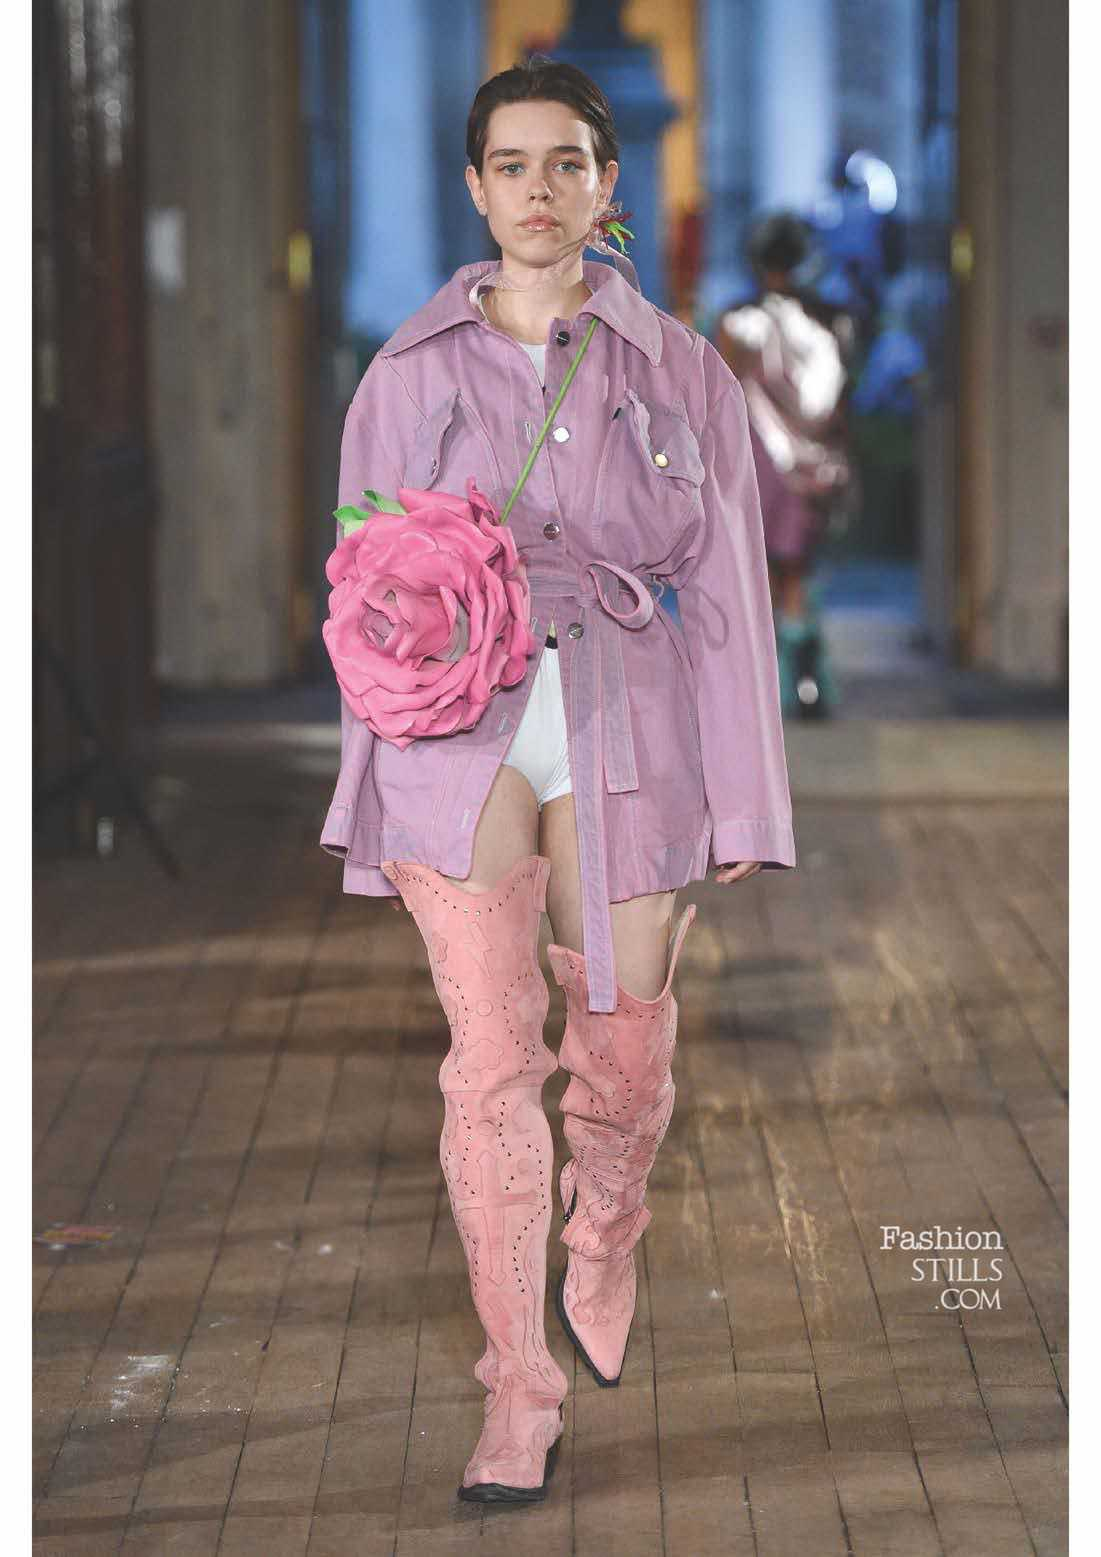 Neith Nyer_1513681575_44_look-book-_-press-release-ss18-neith-nyer-009.jpg